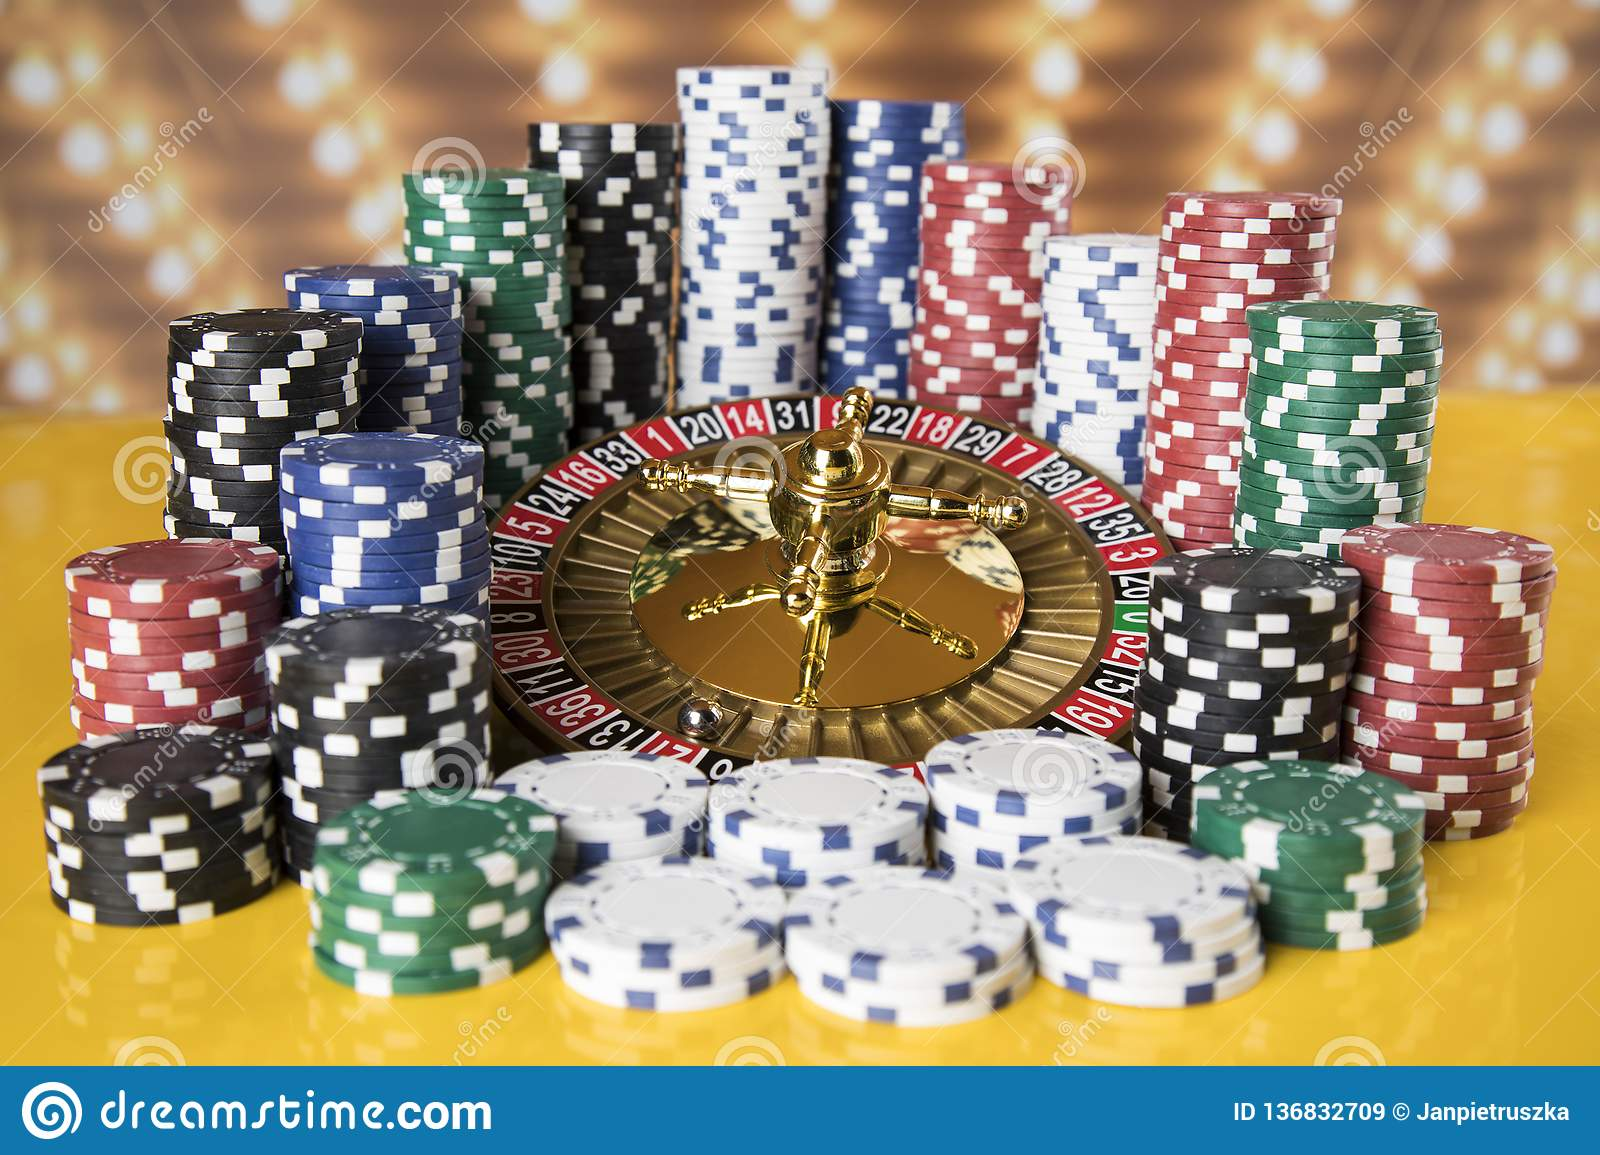 Poker Chips Roulette Wheel In Motion Casino Background Stock Image Image Of Number Entertainment 136832709